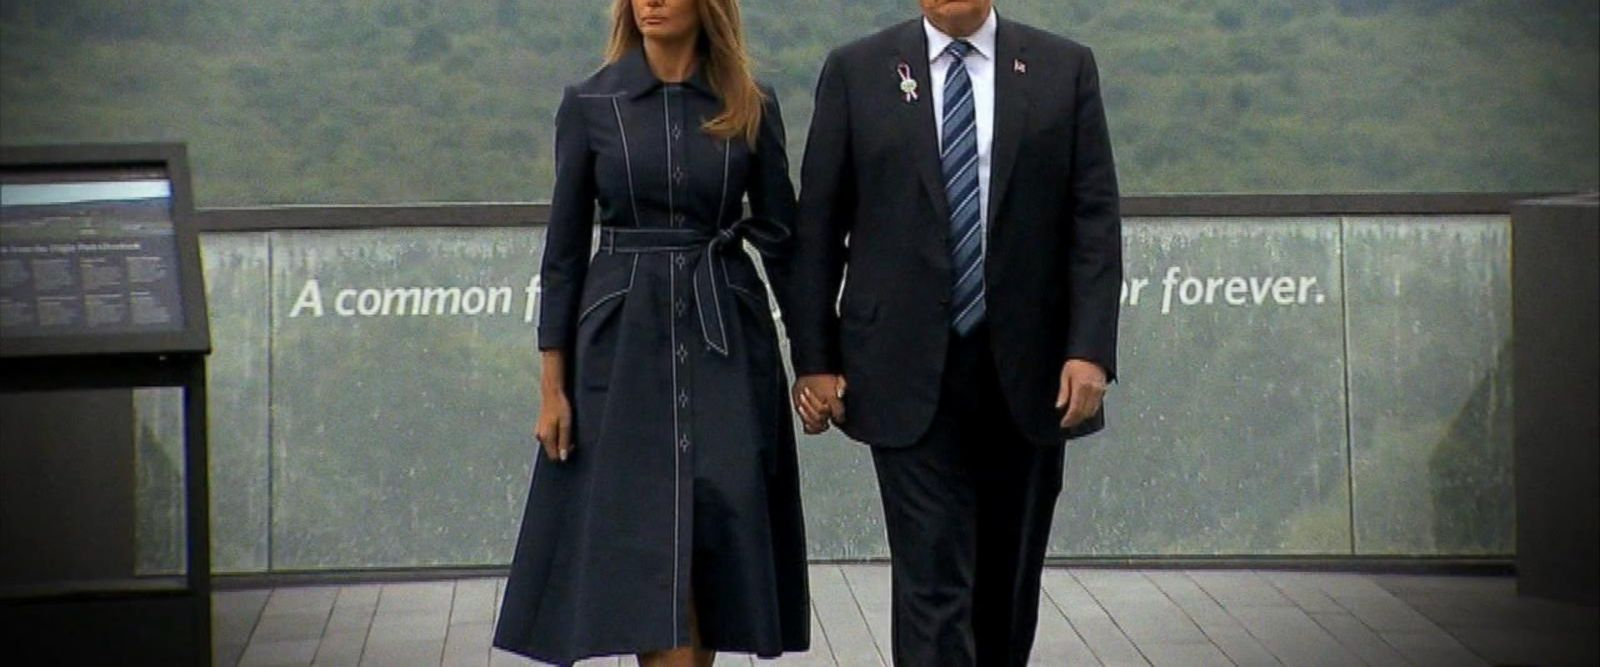 VIDEO: Being Melania - The First Lady Part 1: Melania Trump on becoming the first lady